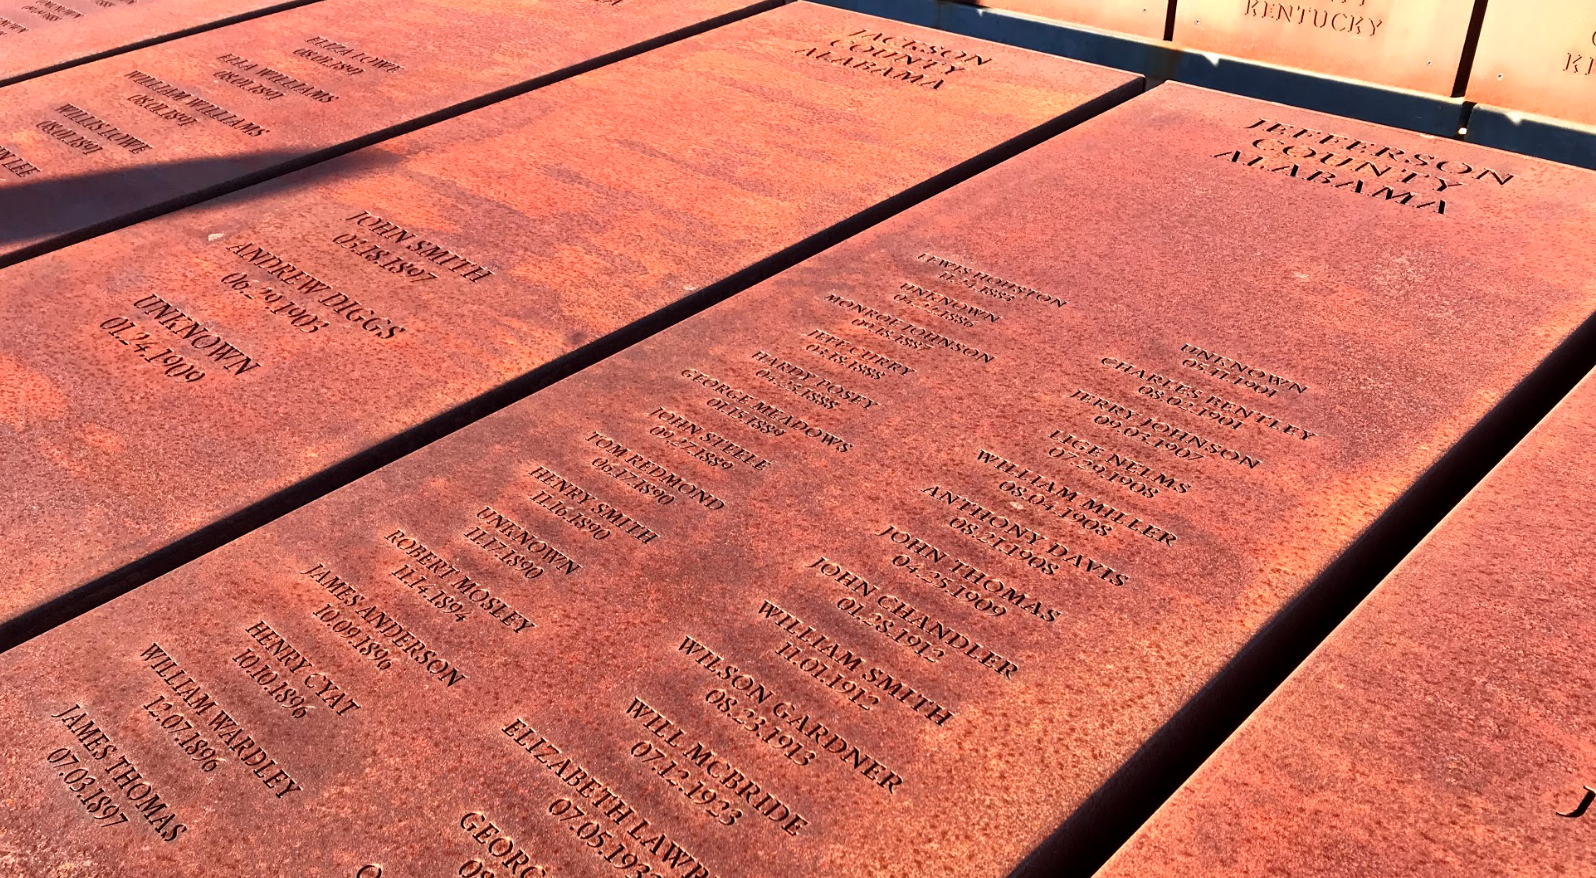 More victims are added to Jefferson County lynching memorial